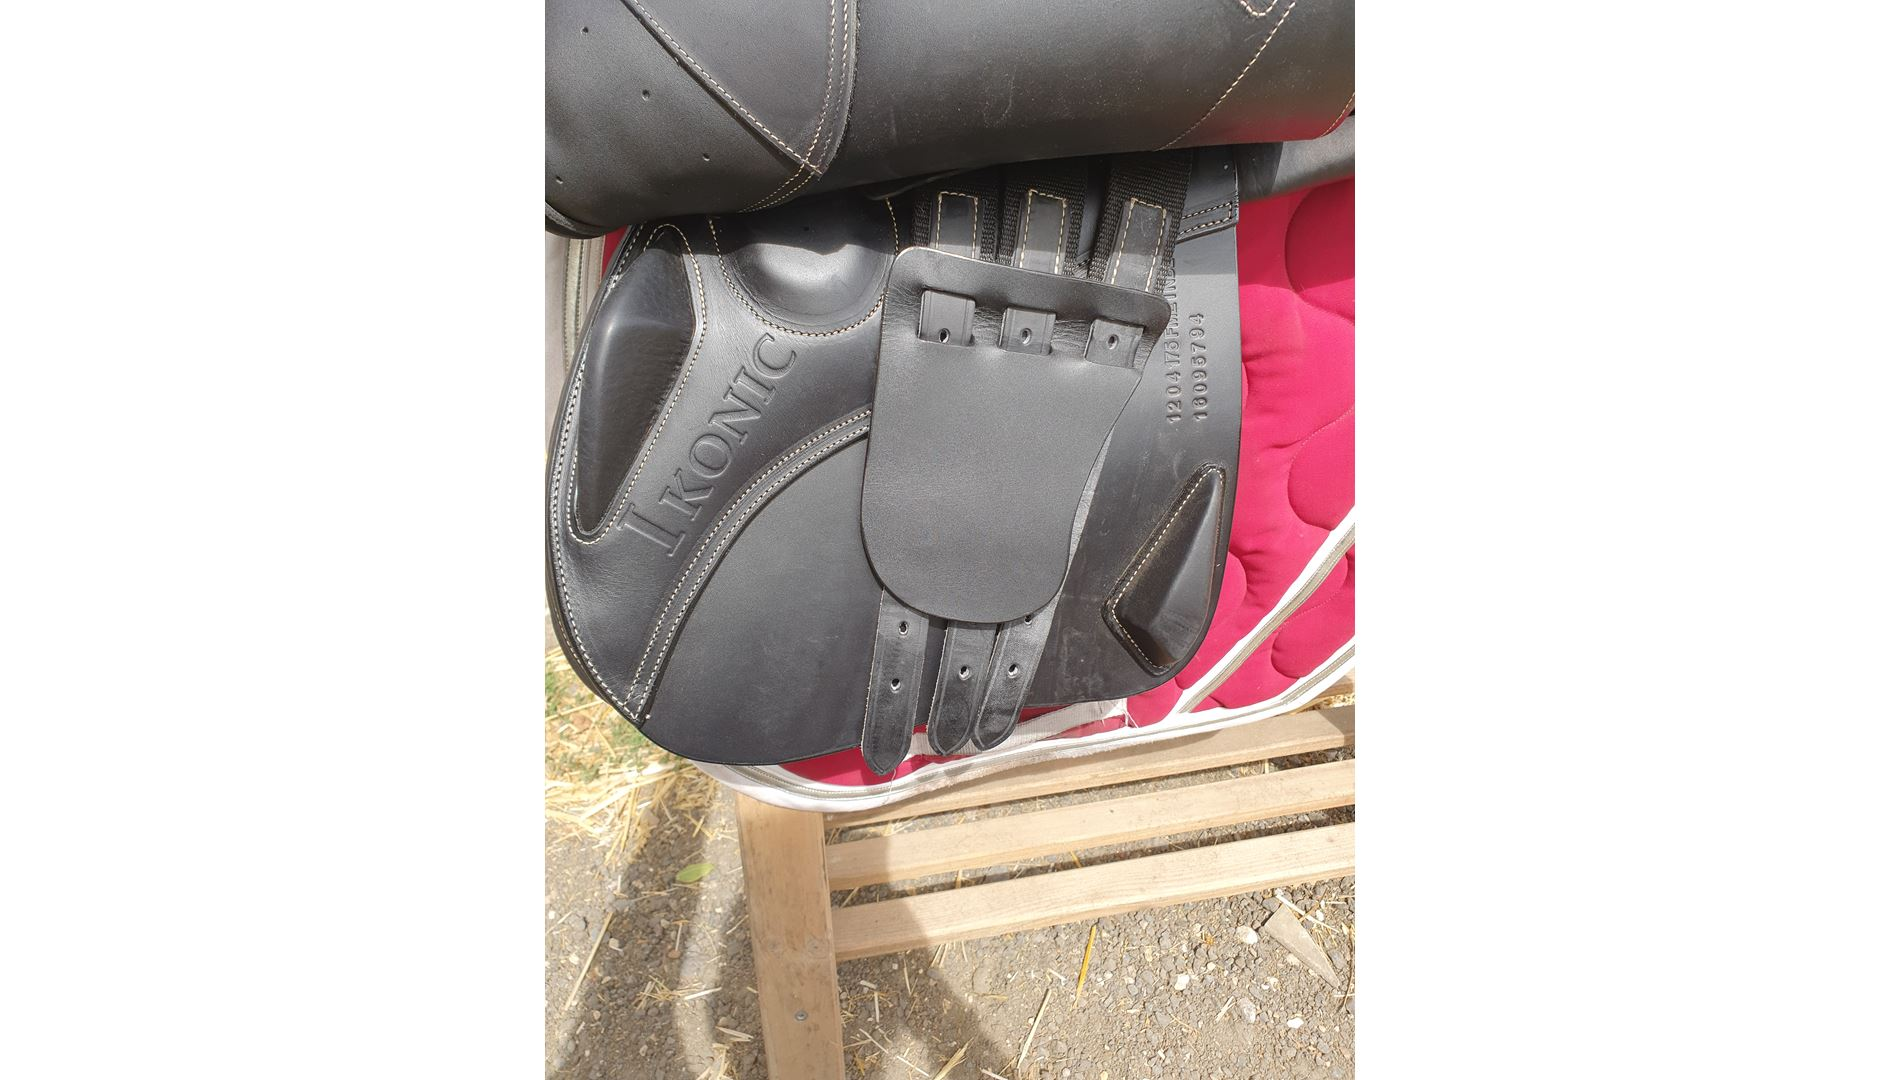 Second hand saddle